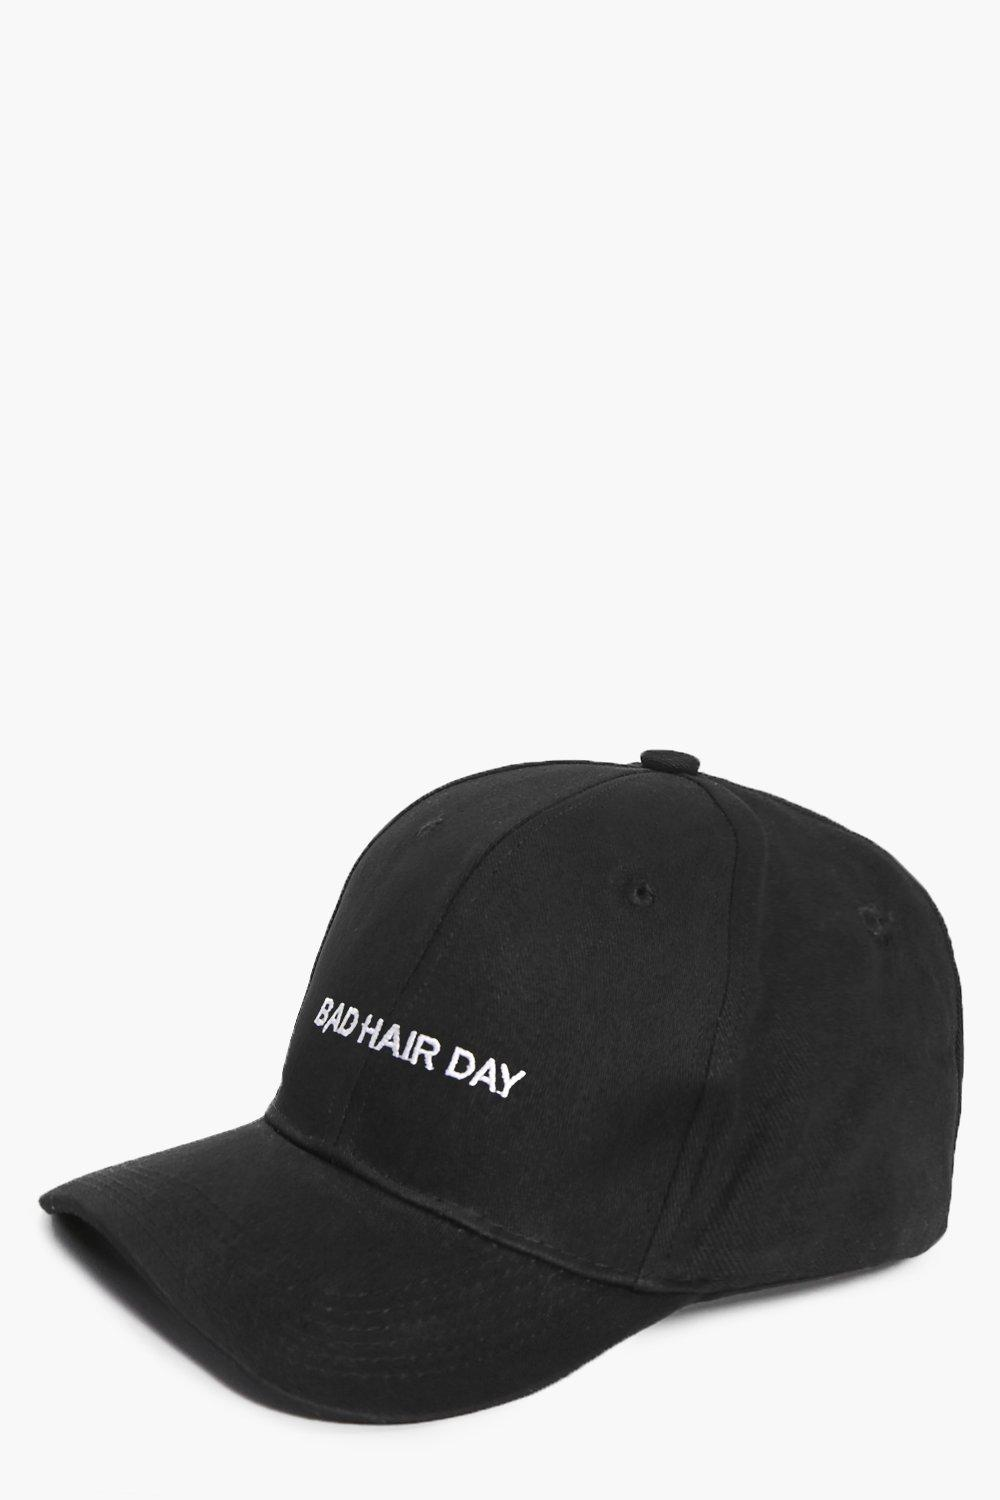 Bad Hair Day Slogan Baseball Cap - black - Lara Ba